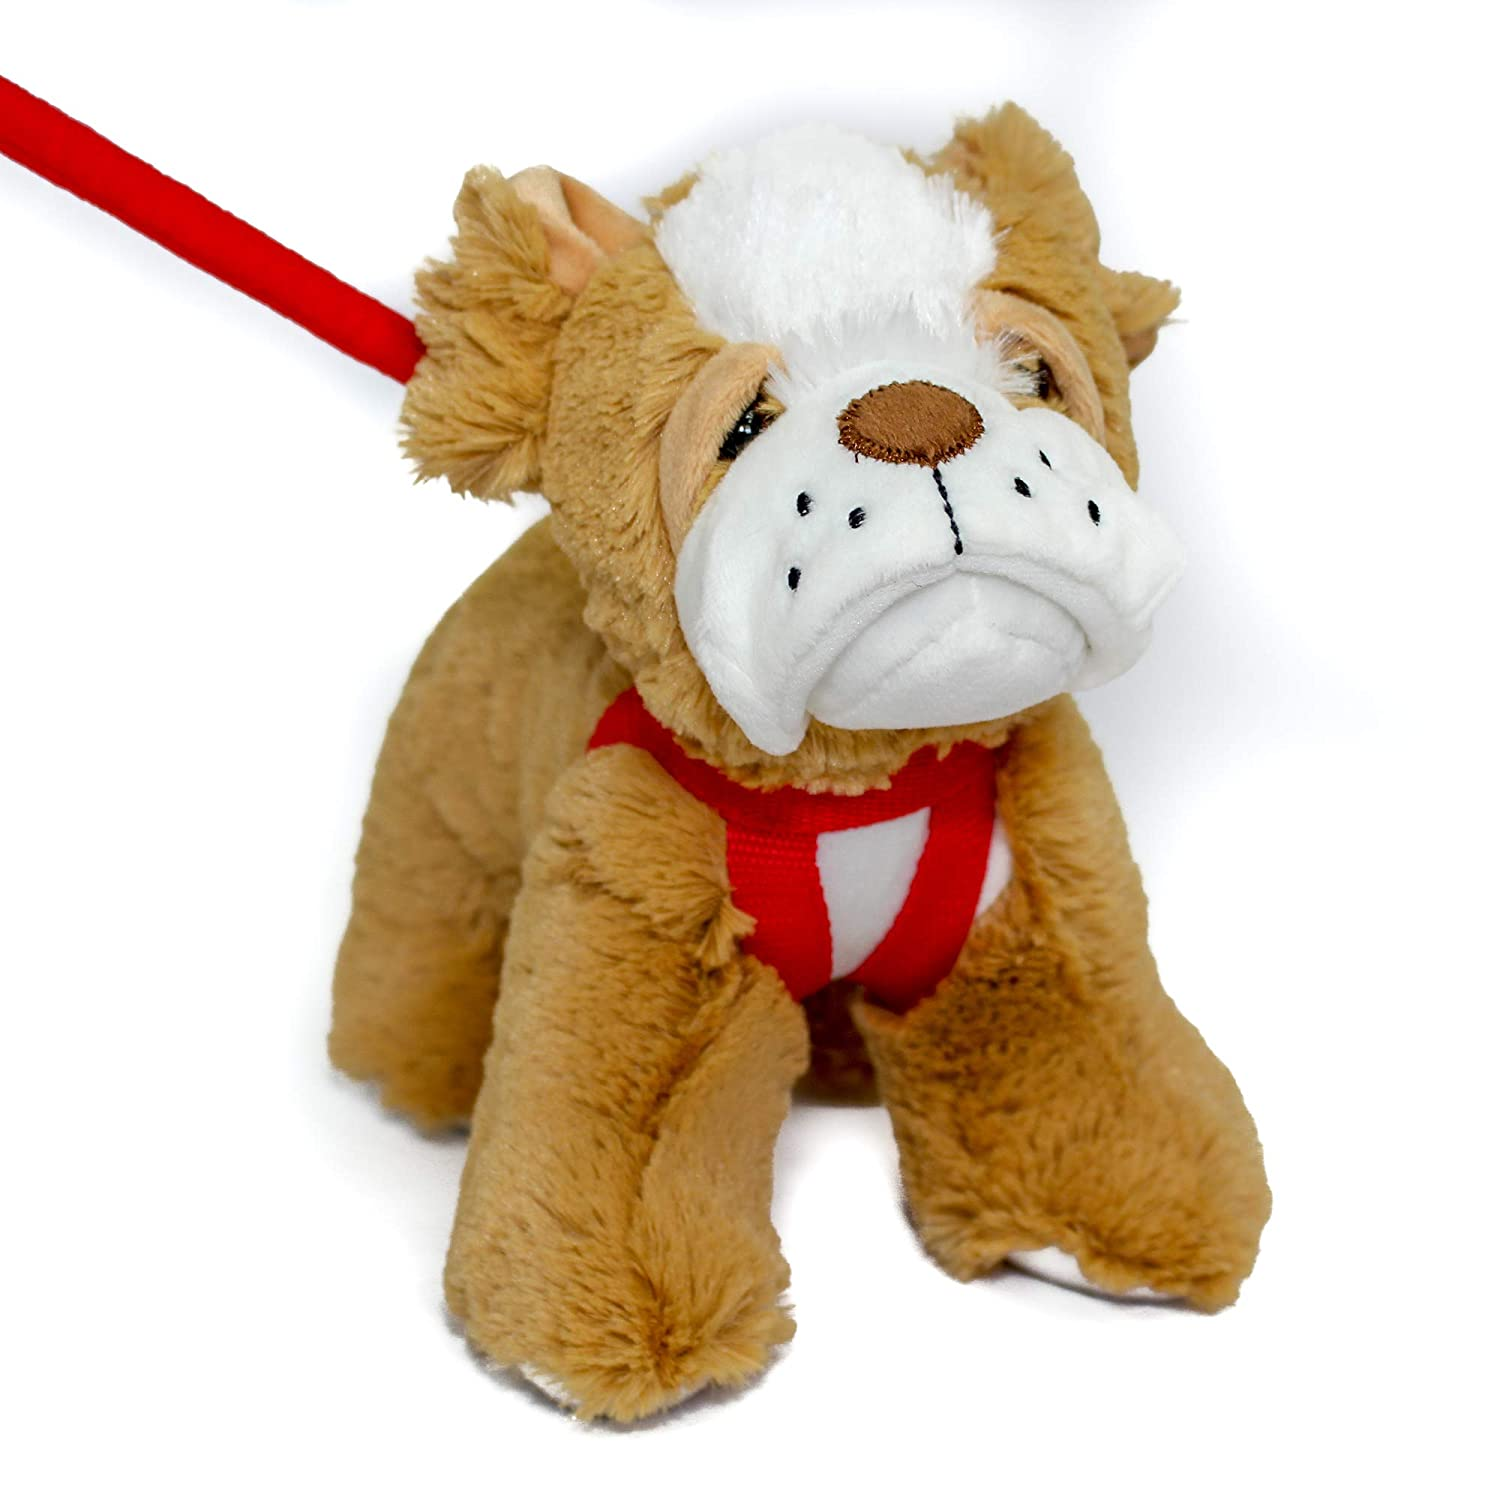 FunStuff Stuffed Animal Plush Toy- Bulldog Brown Dog on a Retractable and Removable Leash